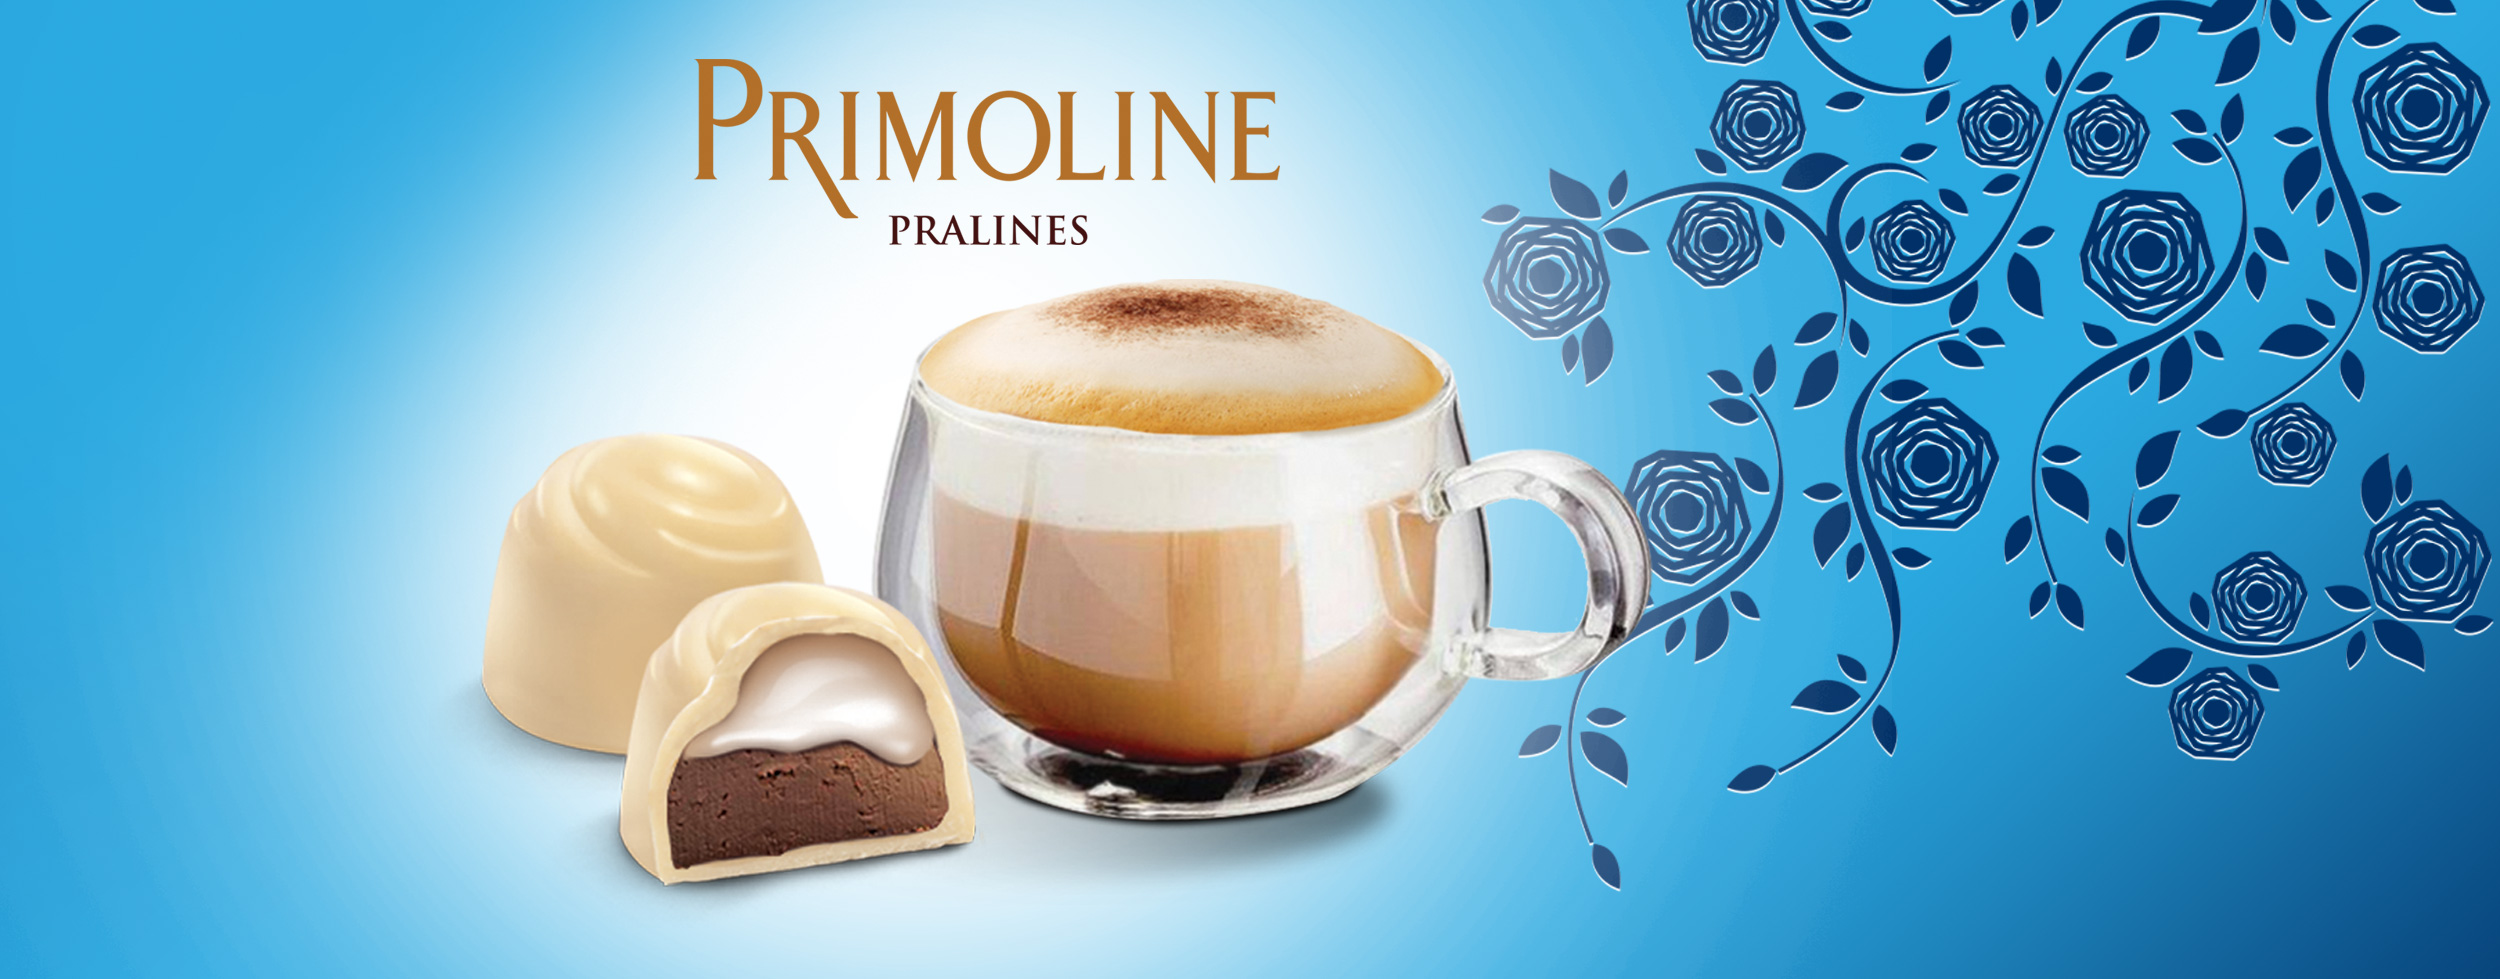 Primoline